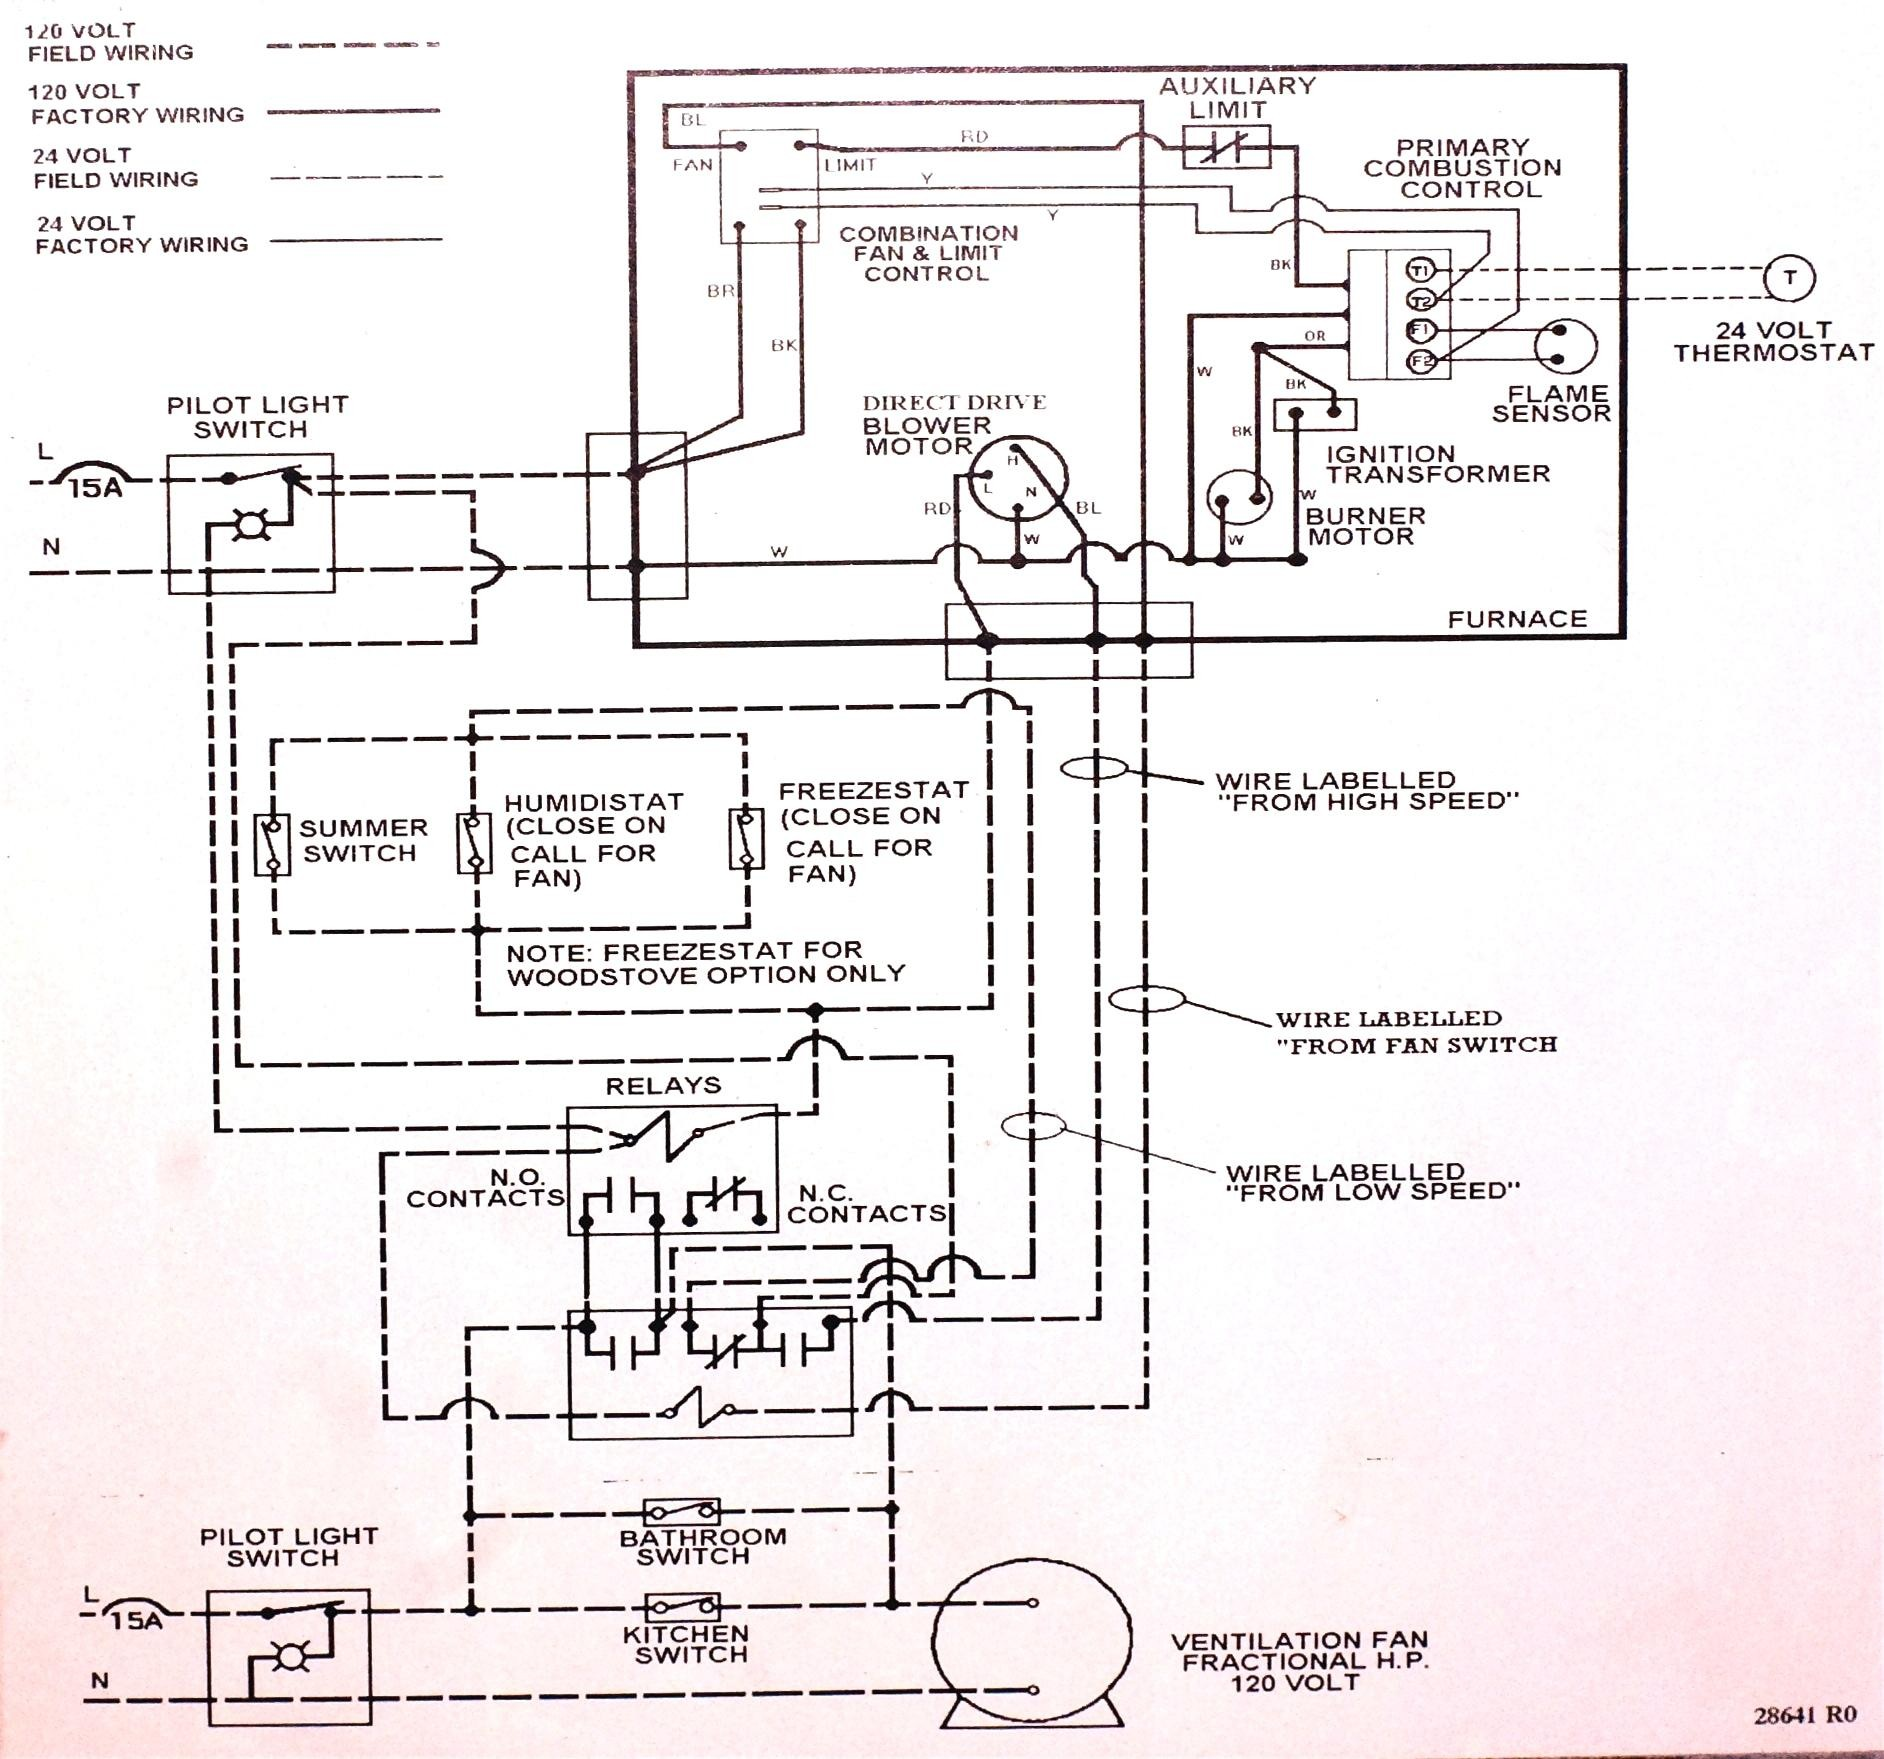 Thermostat Wire Diagram Wiring Carrier Trane In and Wiring Heat Pump Air Conditioner nordyne Heat